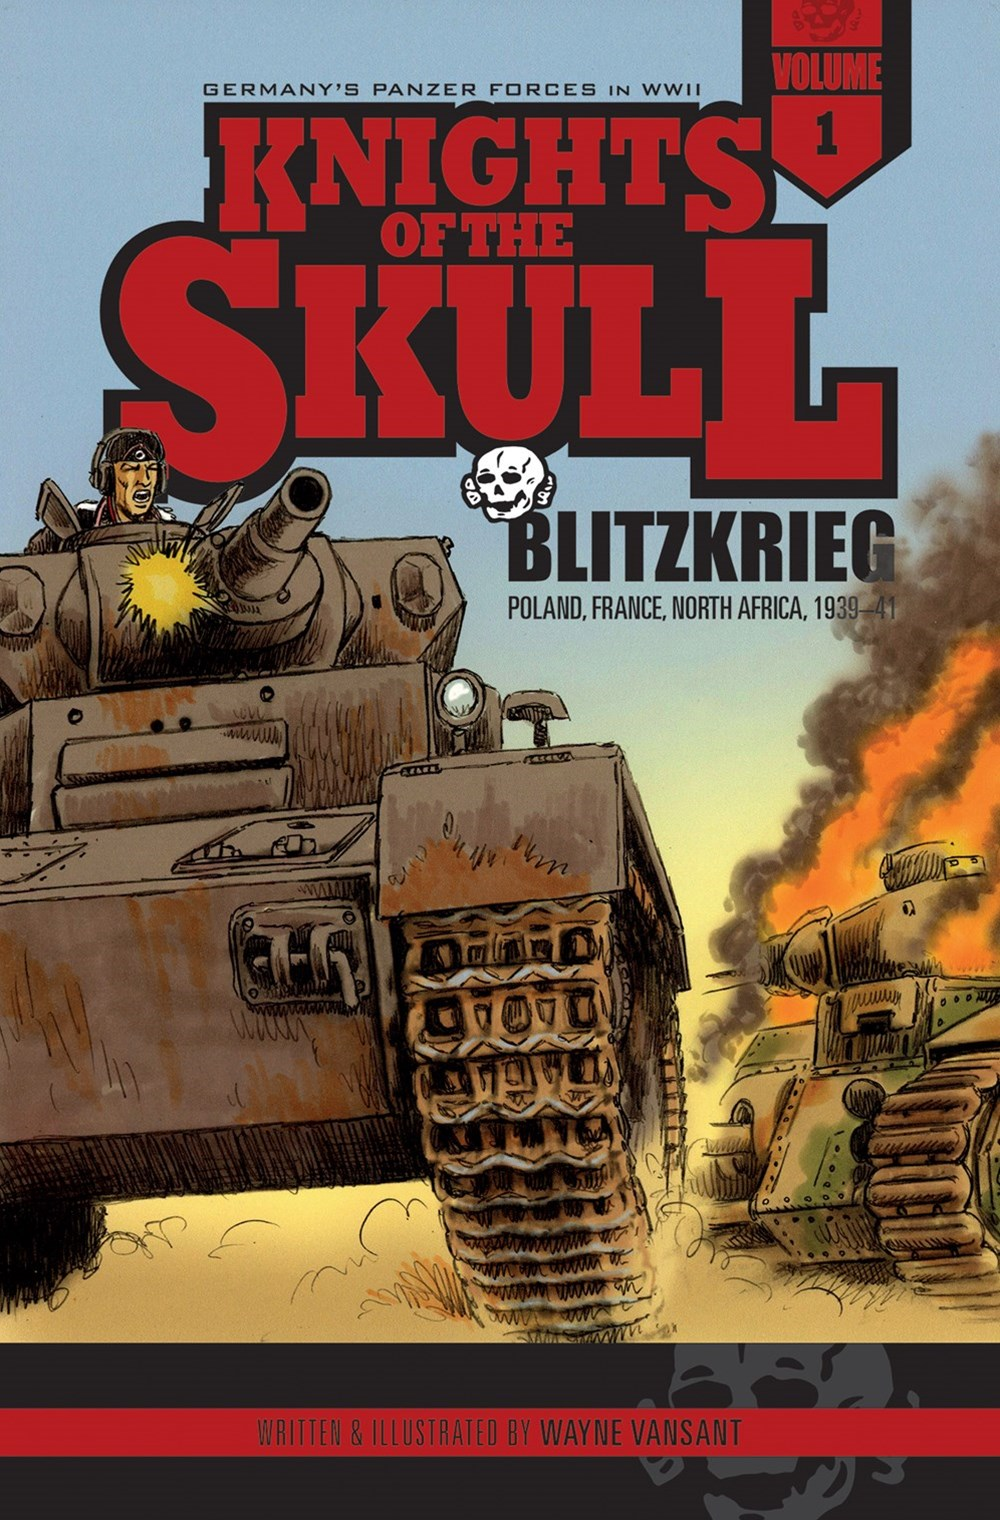 Knights of the Skull, Vol. 1: Germany's Panzer Forces in WWII, Blitzkrieg